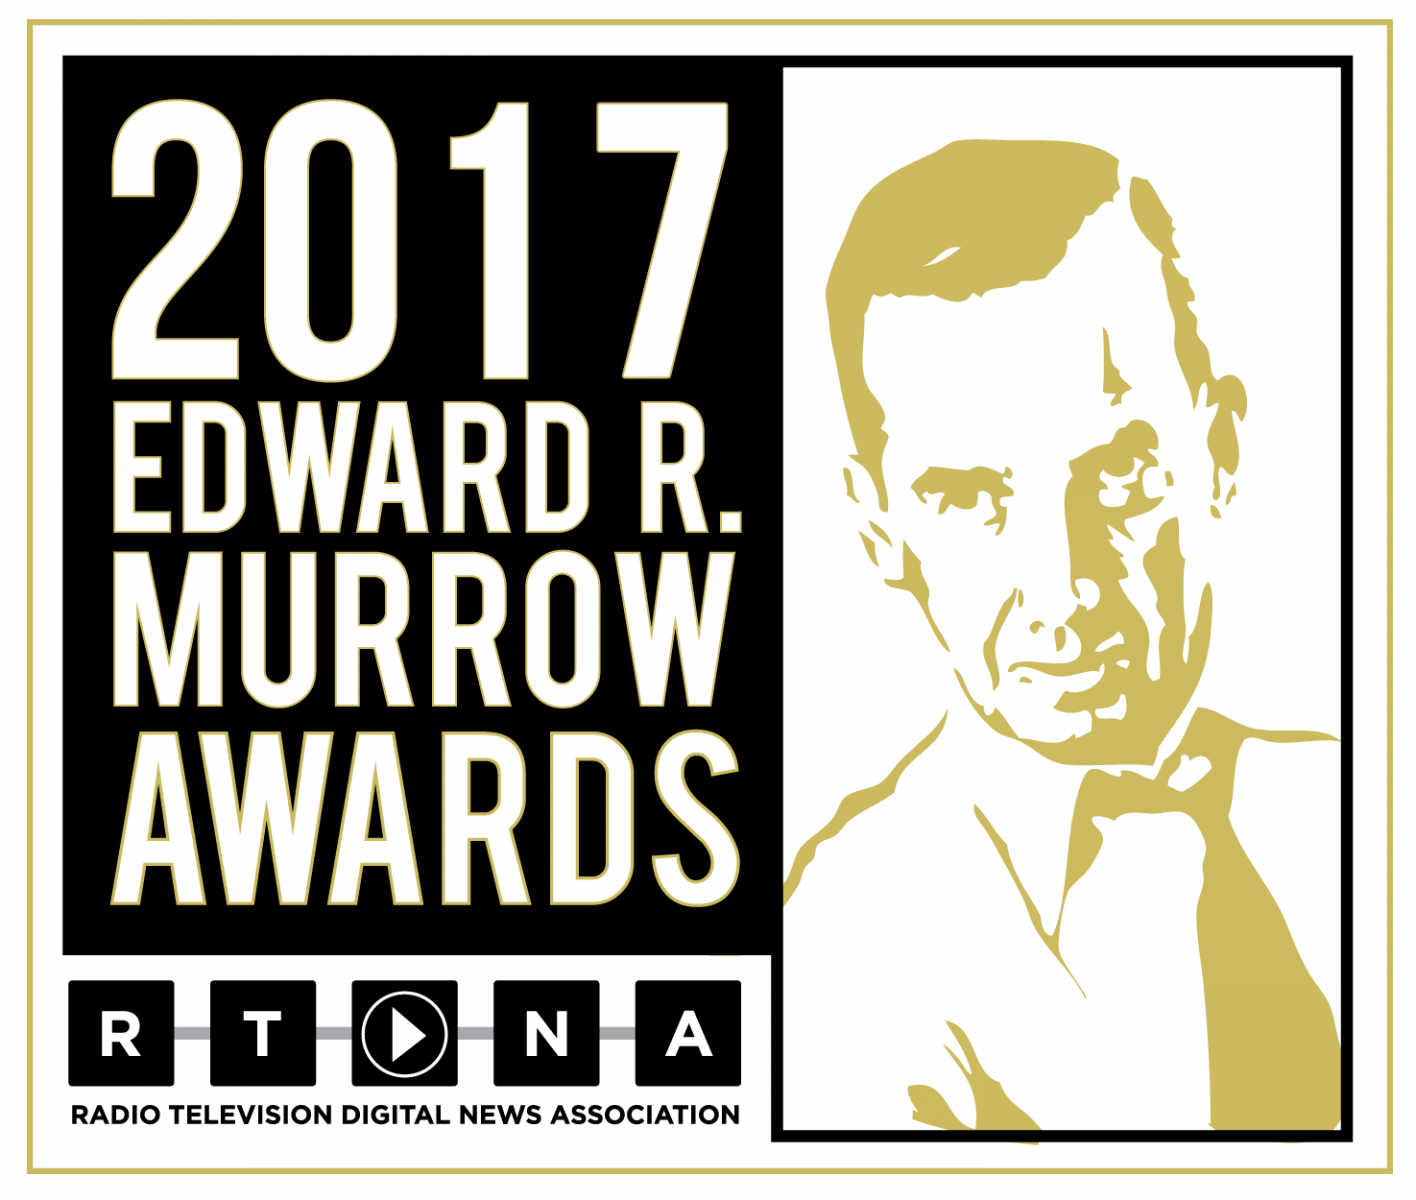 WJHL wins regional Edward R. Murrow award for best investigative reporting